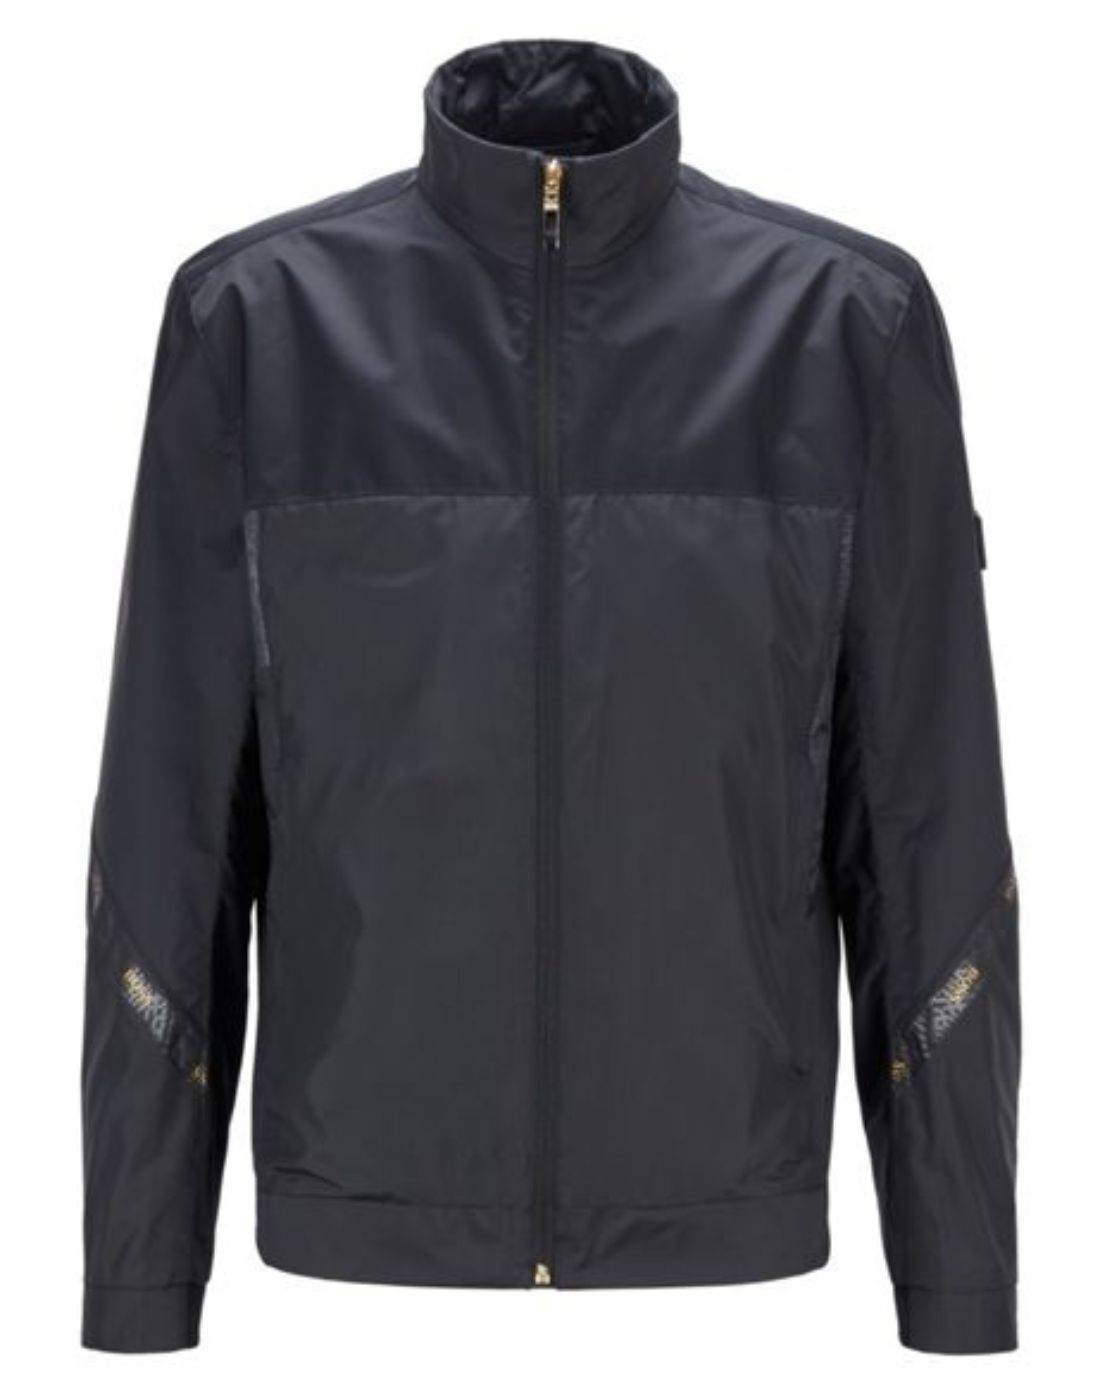 hugo boss black jacket 2021